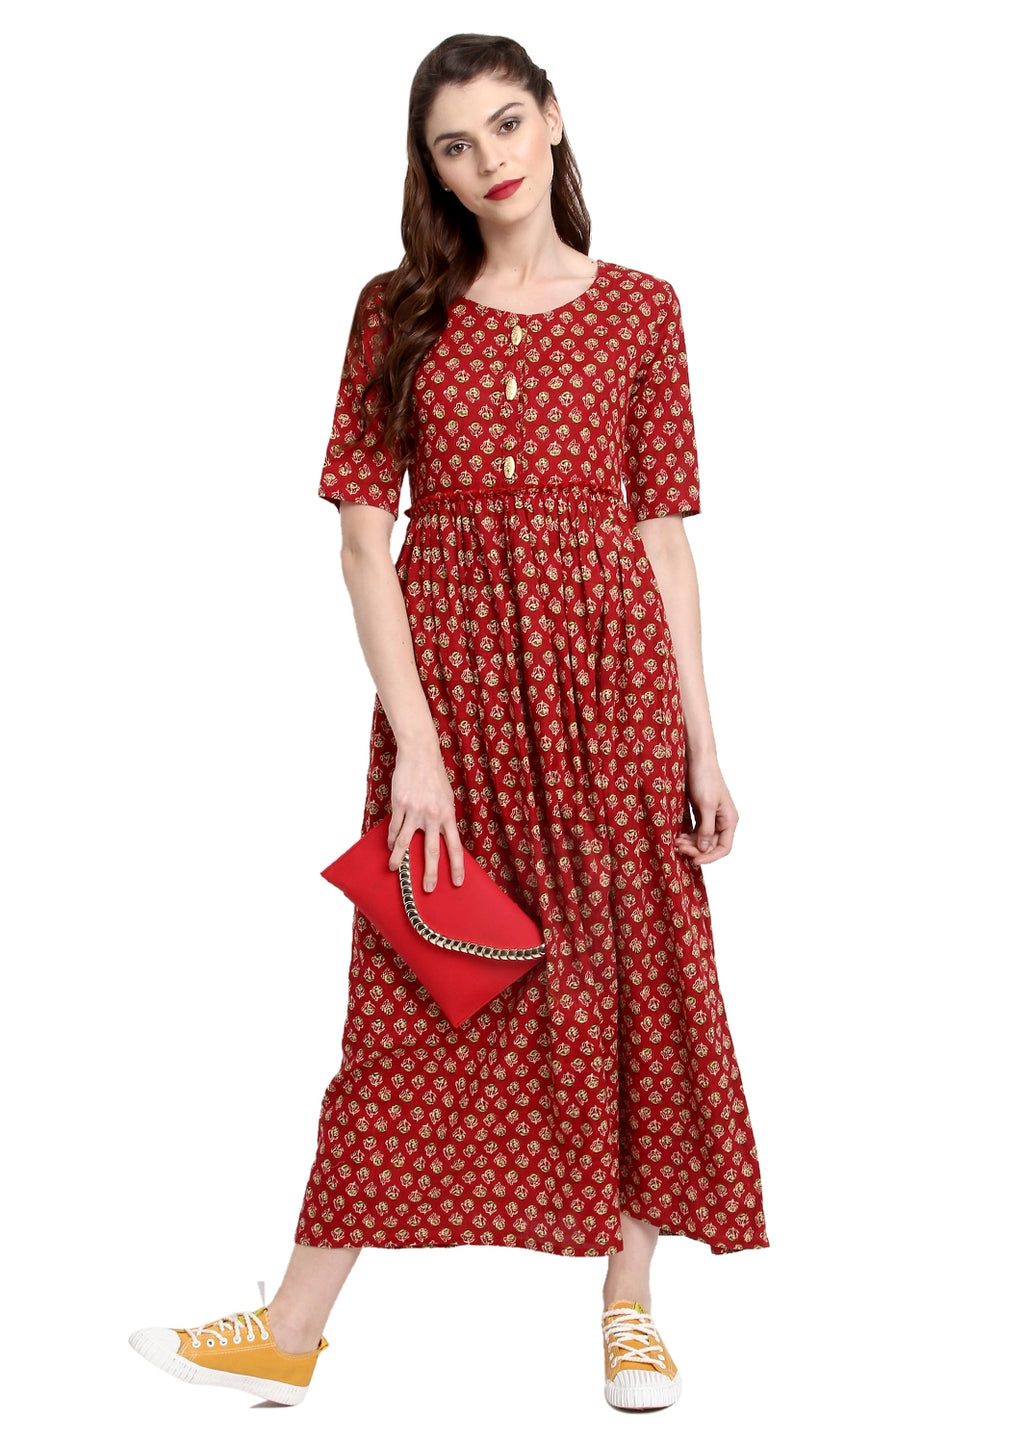 Red Color Cotton Readymade Party Wear Kurtis ( Sizes-36,38,40,42,44) Janasya Catlog SJ-10279